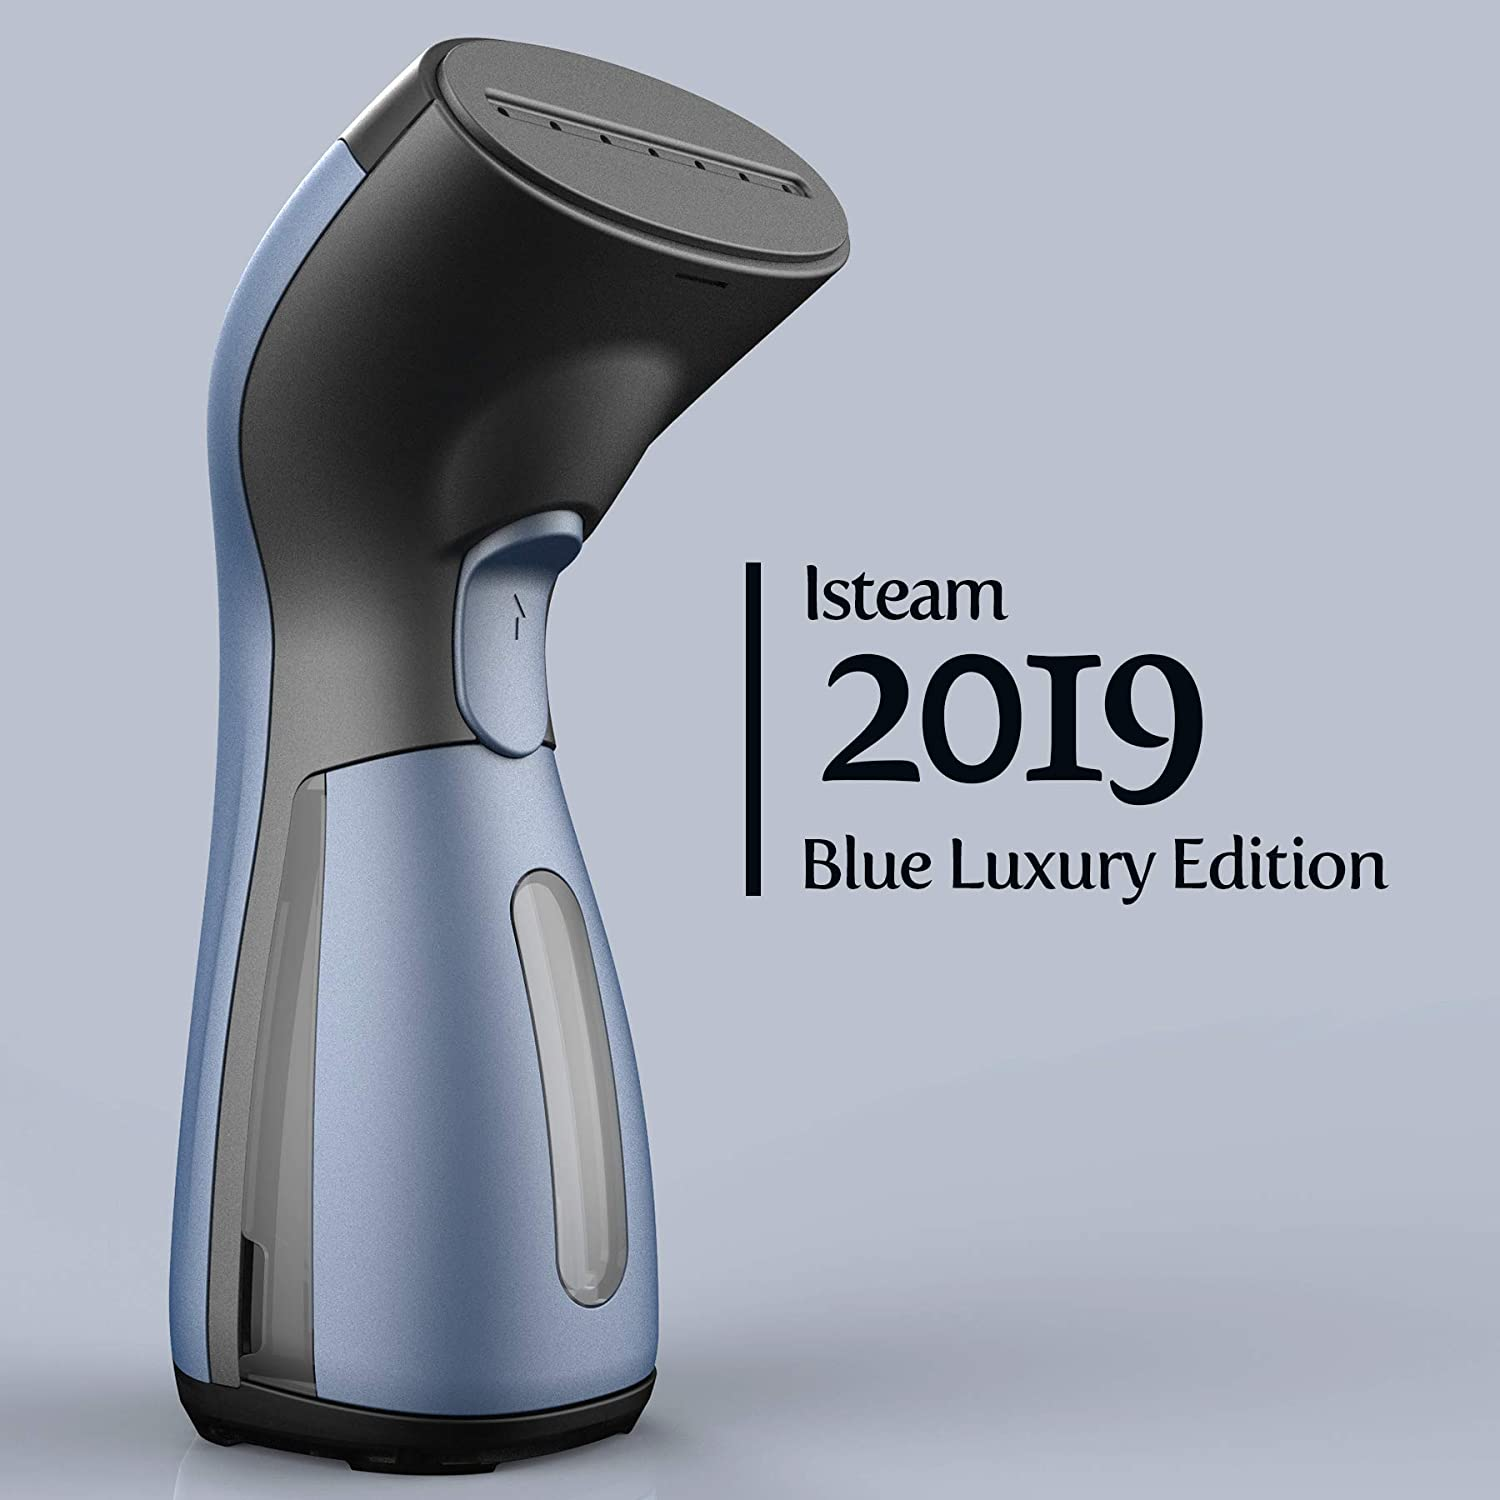 Luxury Edition Steamer Technology [2019] 8-in-1 Powerful: Clothes Wrinkle Remover- Clean- Sterilize- Sanitize- Refresh- Treat- Defrost. for Garment/Home/Kitchen/Bathroom/Car/Face/Travel [Blue]